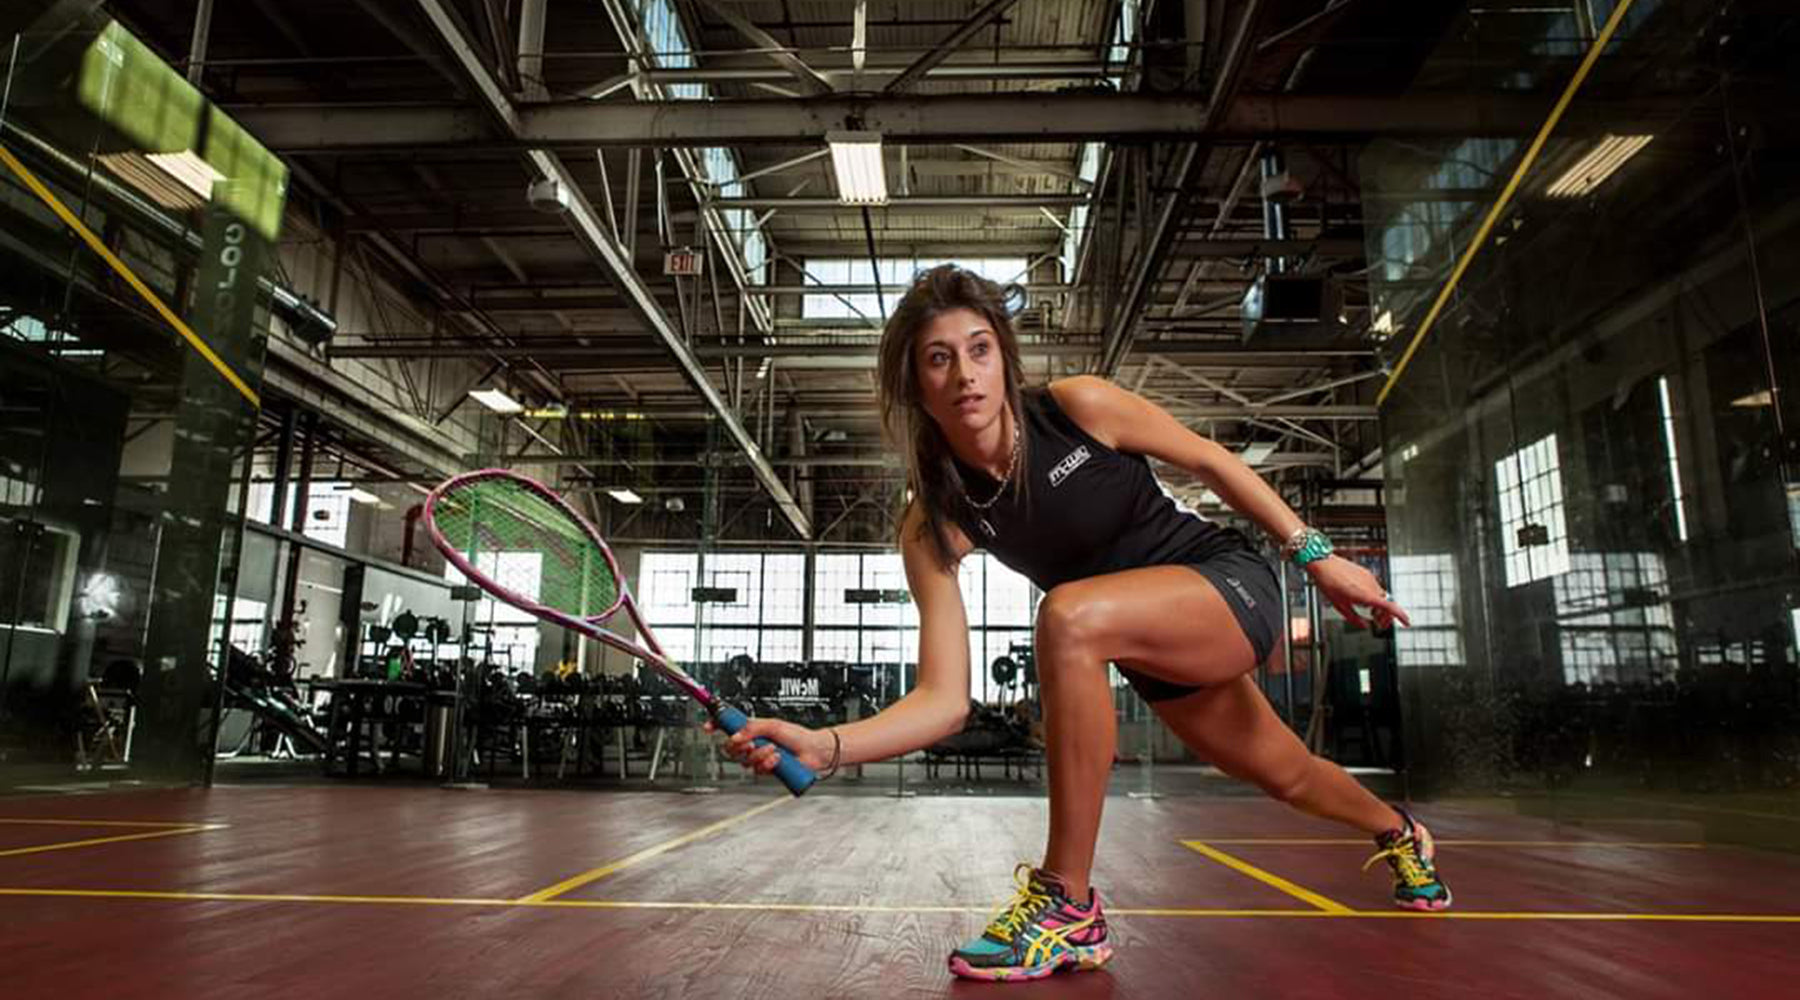 Photo of Megan Craig, NZ Professional Squash Player doing what she loves.